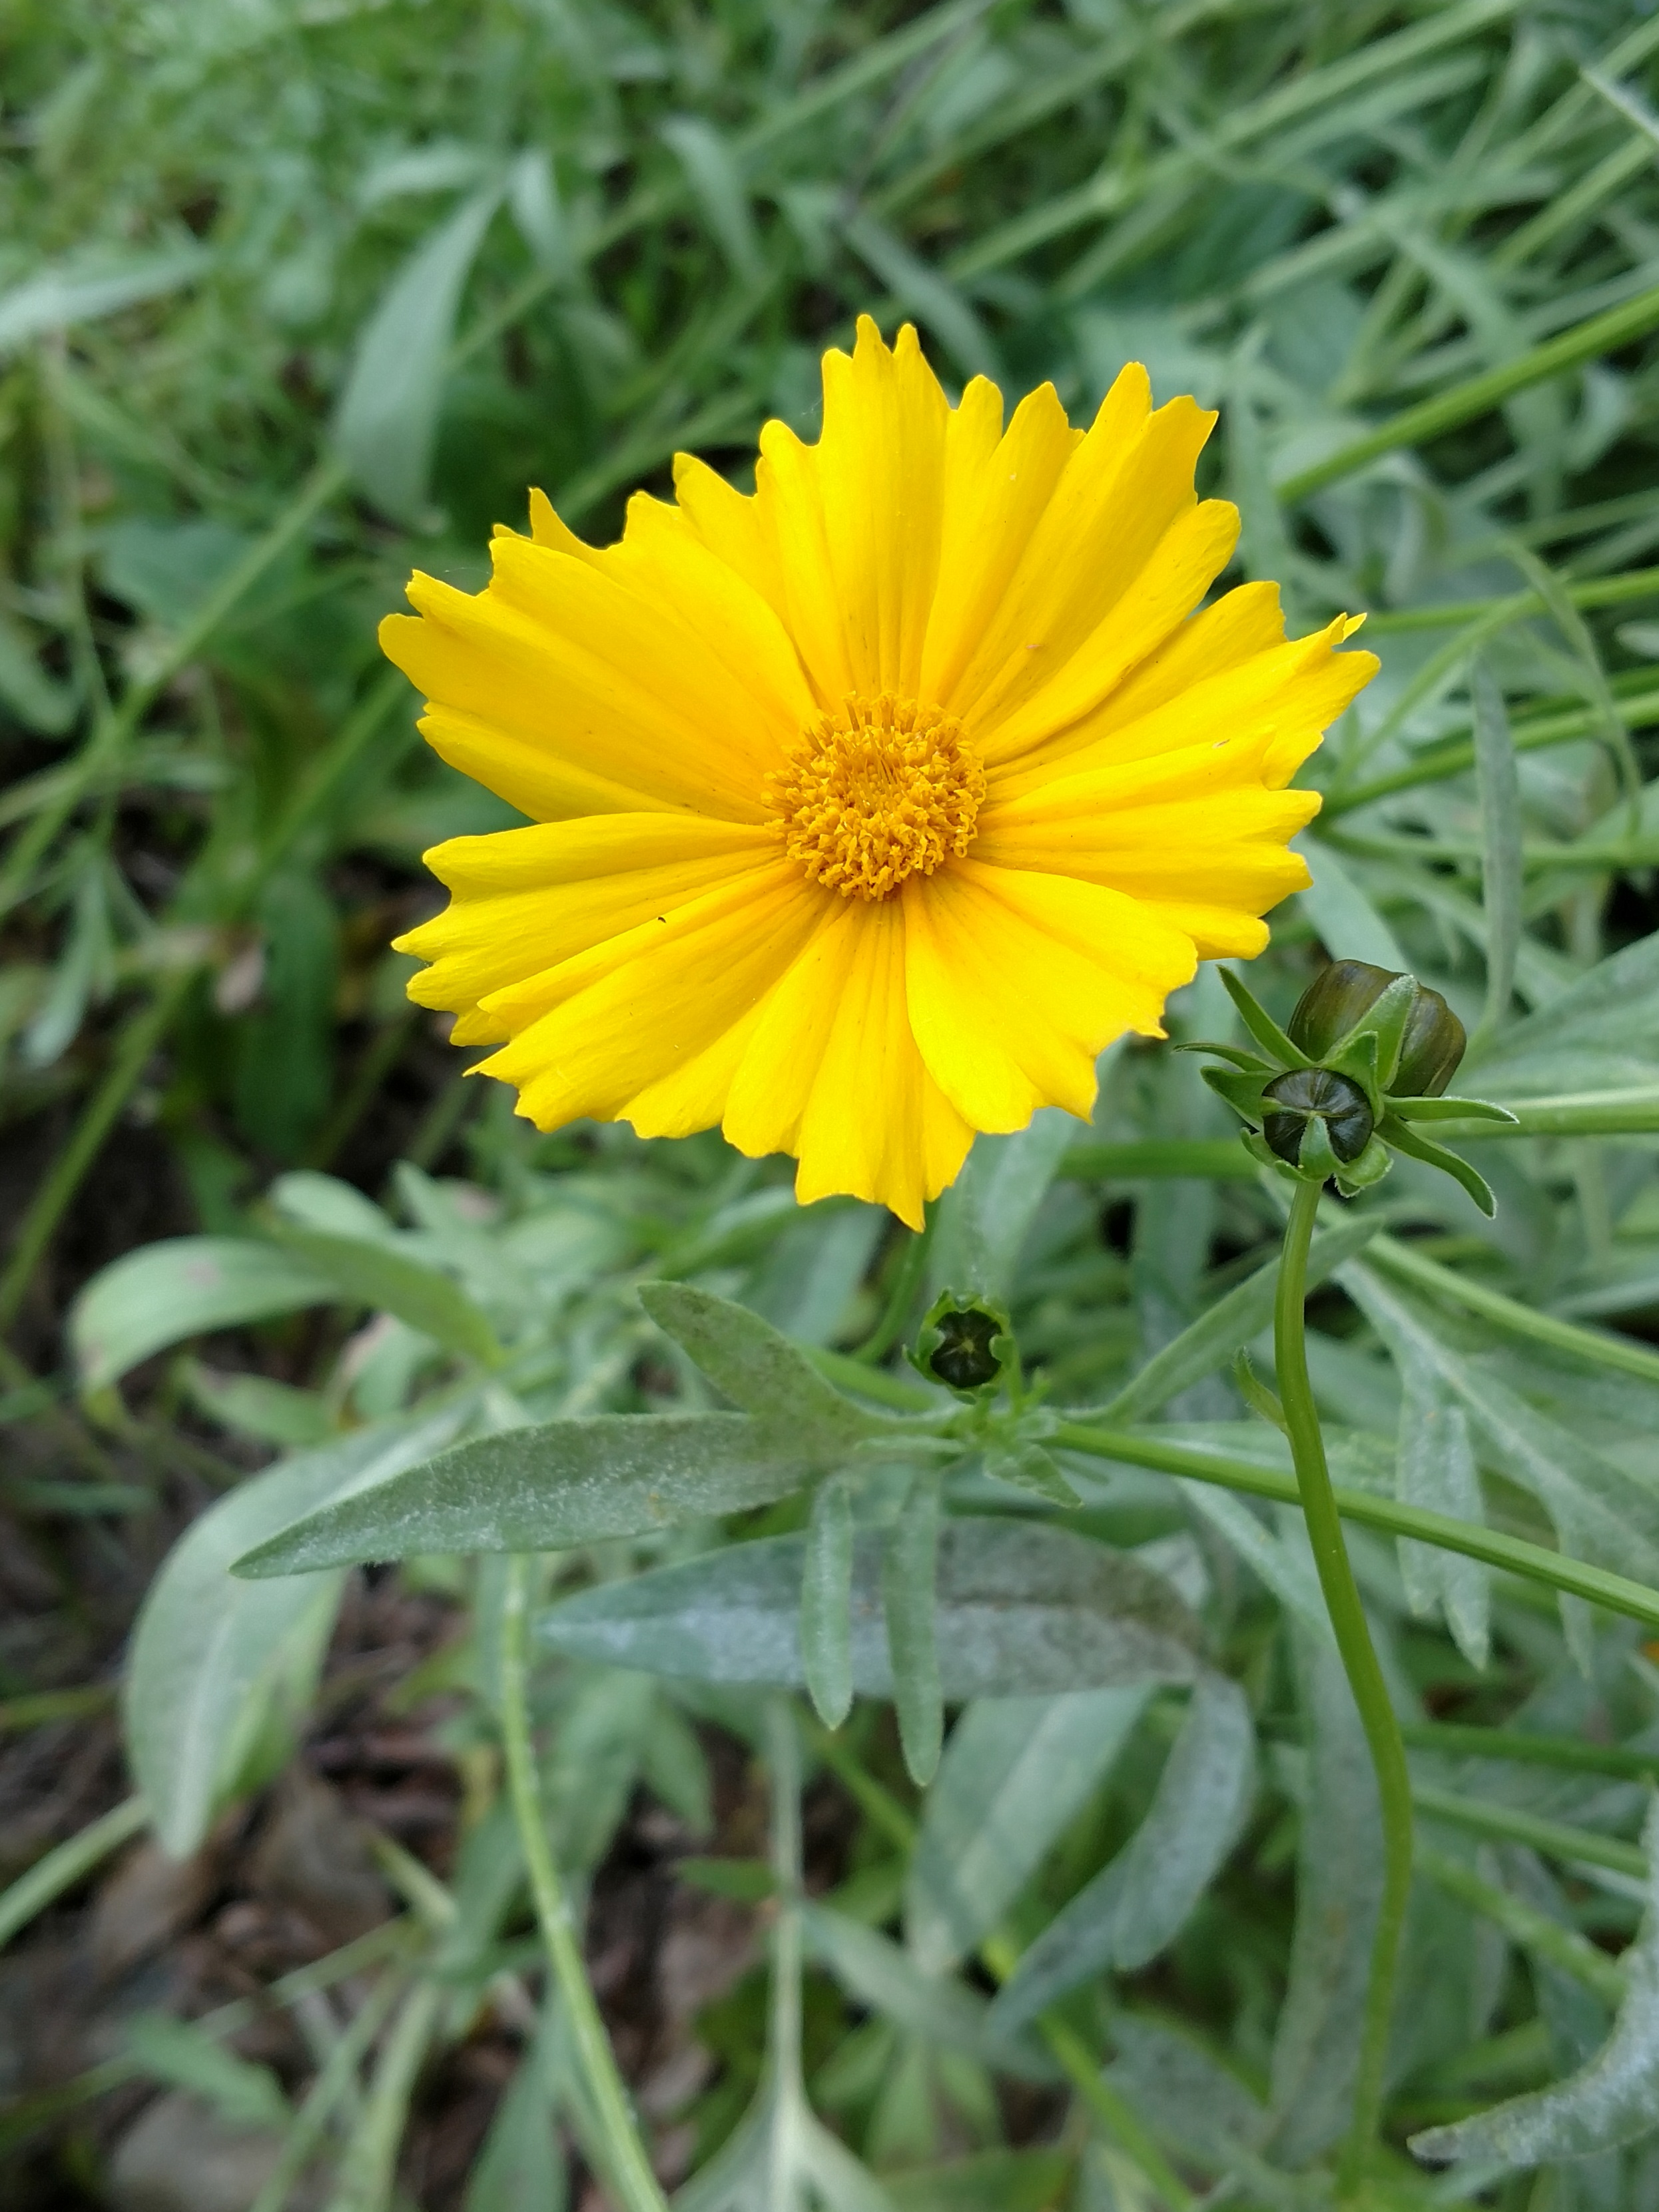 The Scientific Name is Coreopsis lanceolata. You will likely hear them called Longstalk Coreopsis, Lance-leaved Tickseed, Lanceleaf Coreopsis. This picture shows the Ray and disk florets are yellow. of Coreopsis lanceolata